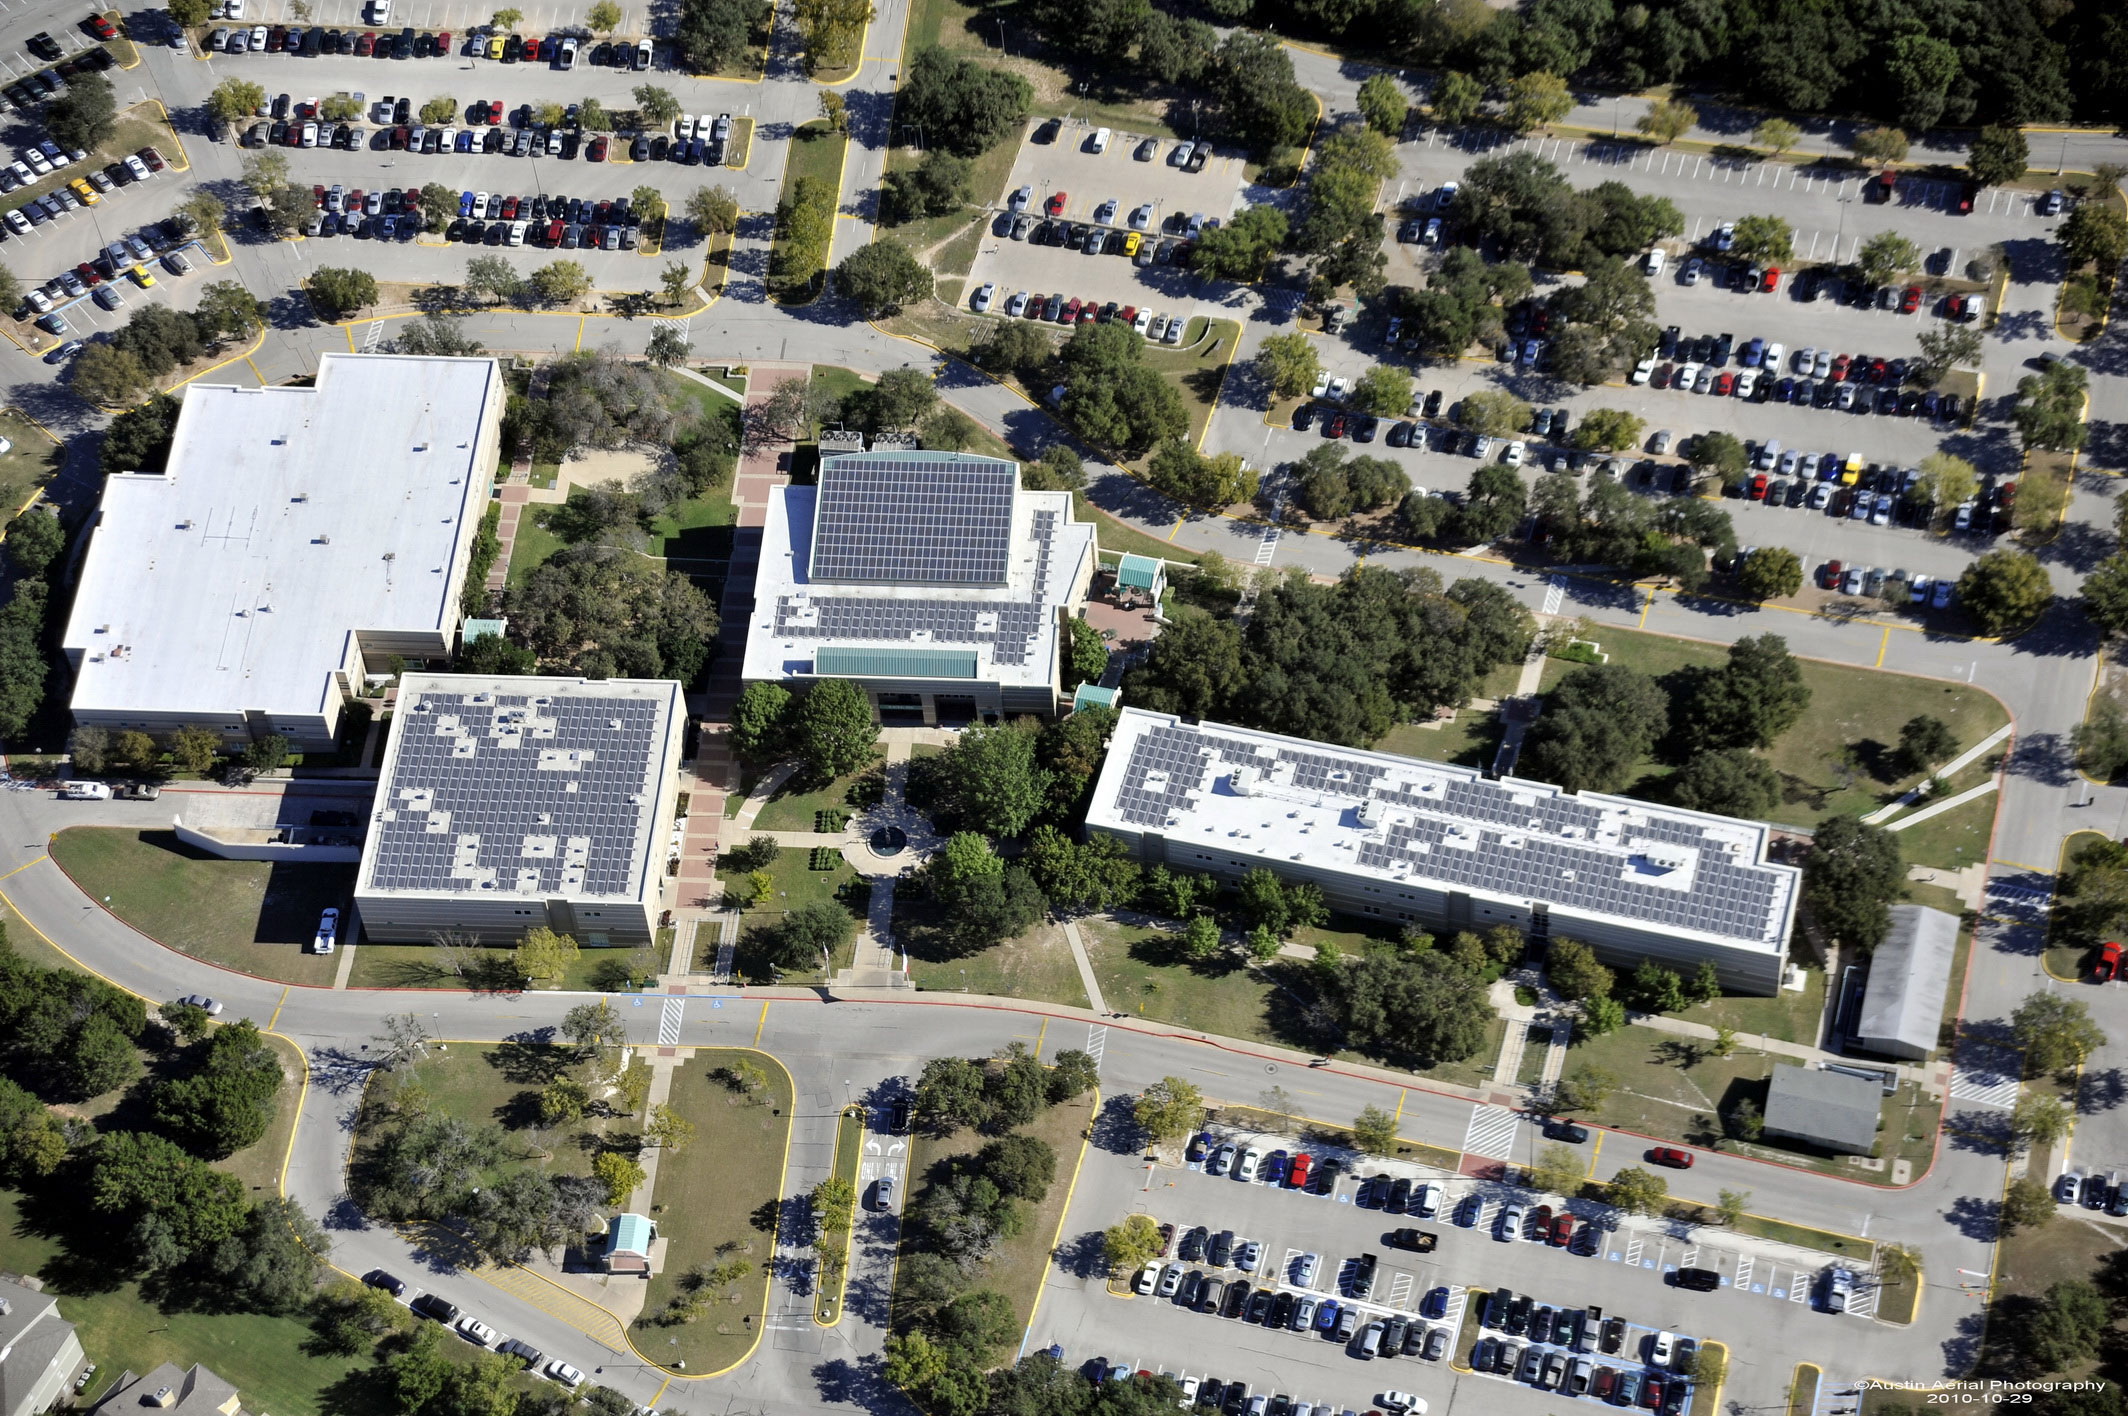 An arial view of Austin Community College buildings toped with solar panels surrounded by parked cars